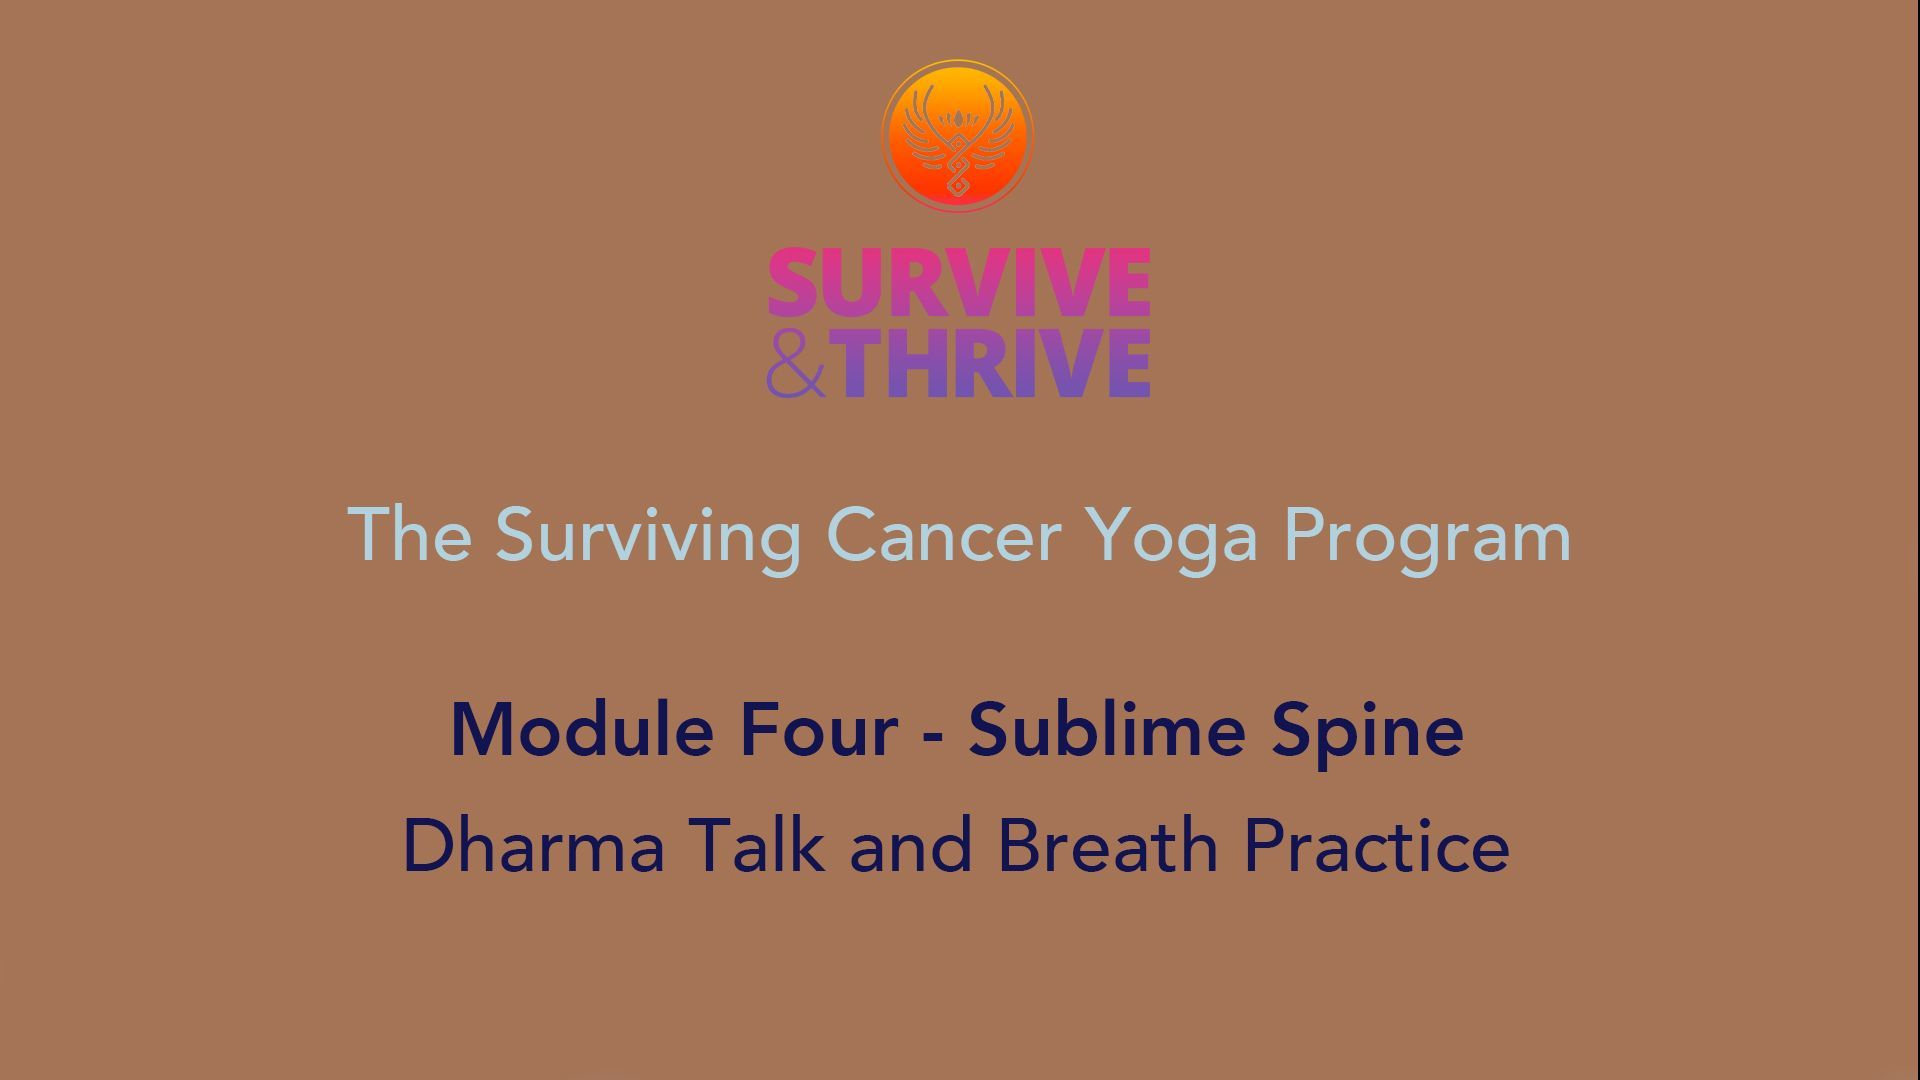 SURVIVE AND THRIVE | MODULE 4 - SUBLIME SPINE | DHARMA TALK